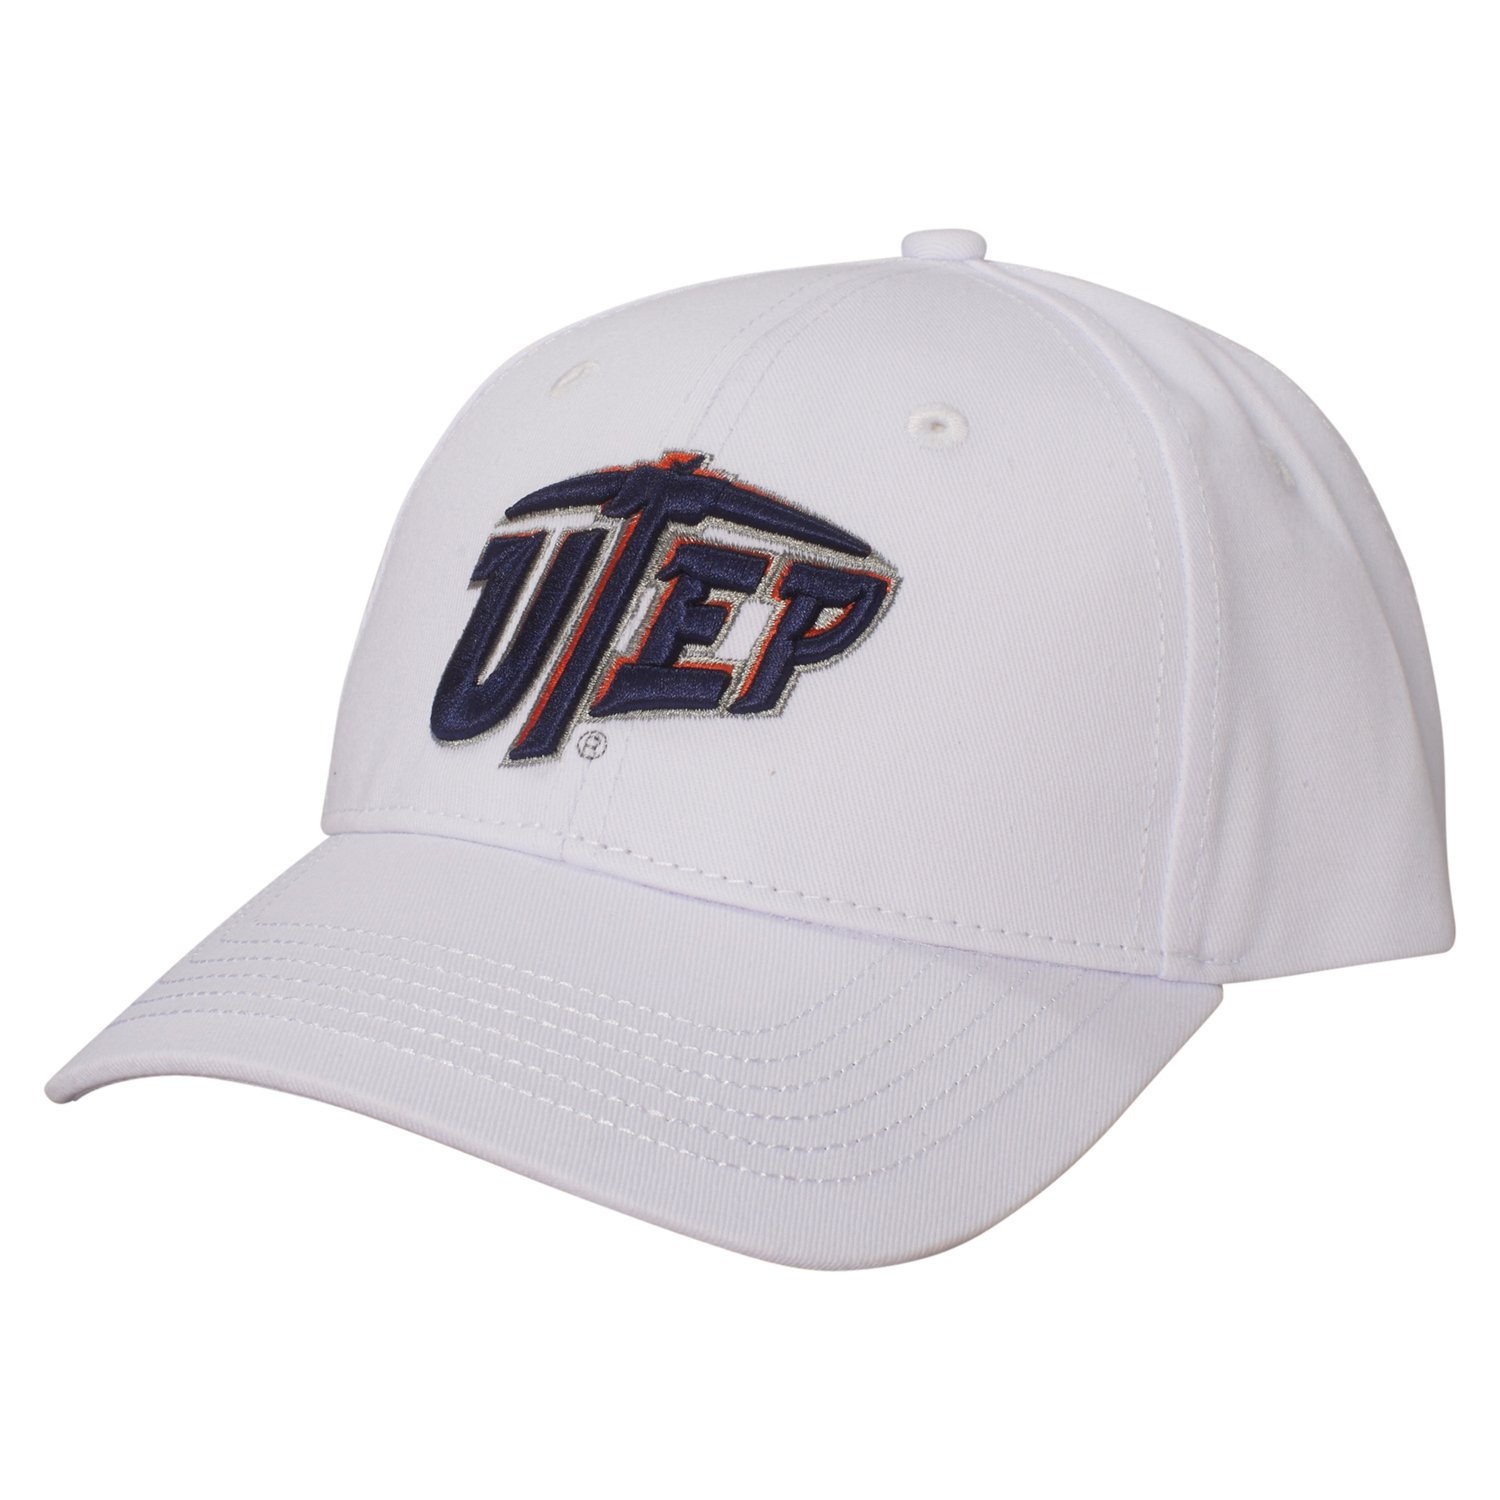 c0f237c7b8980 Amazon.com : Ouray Sportswear NCAA Structured Epic Cap : Sports & Outdoors